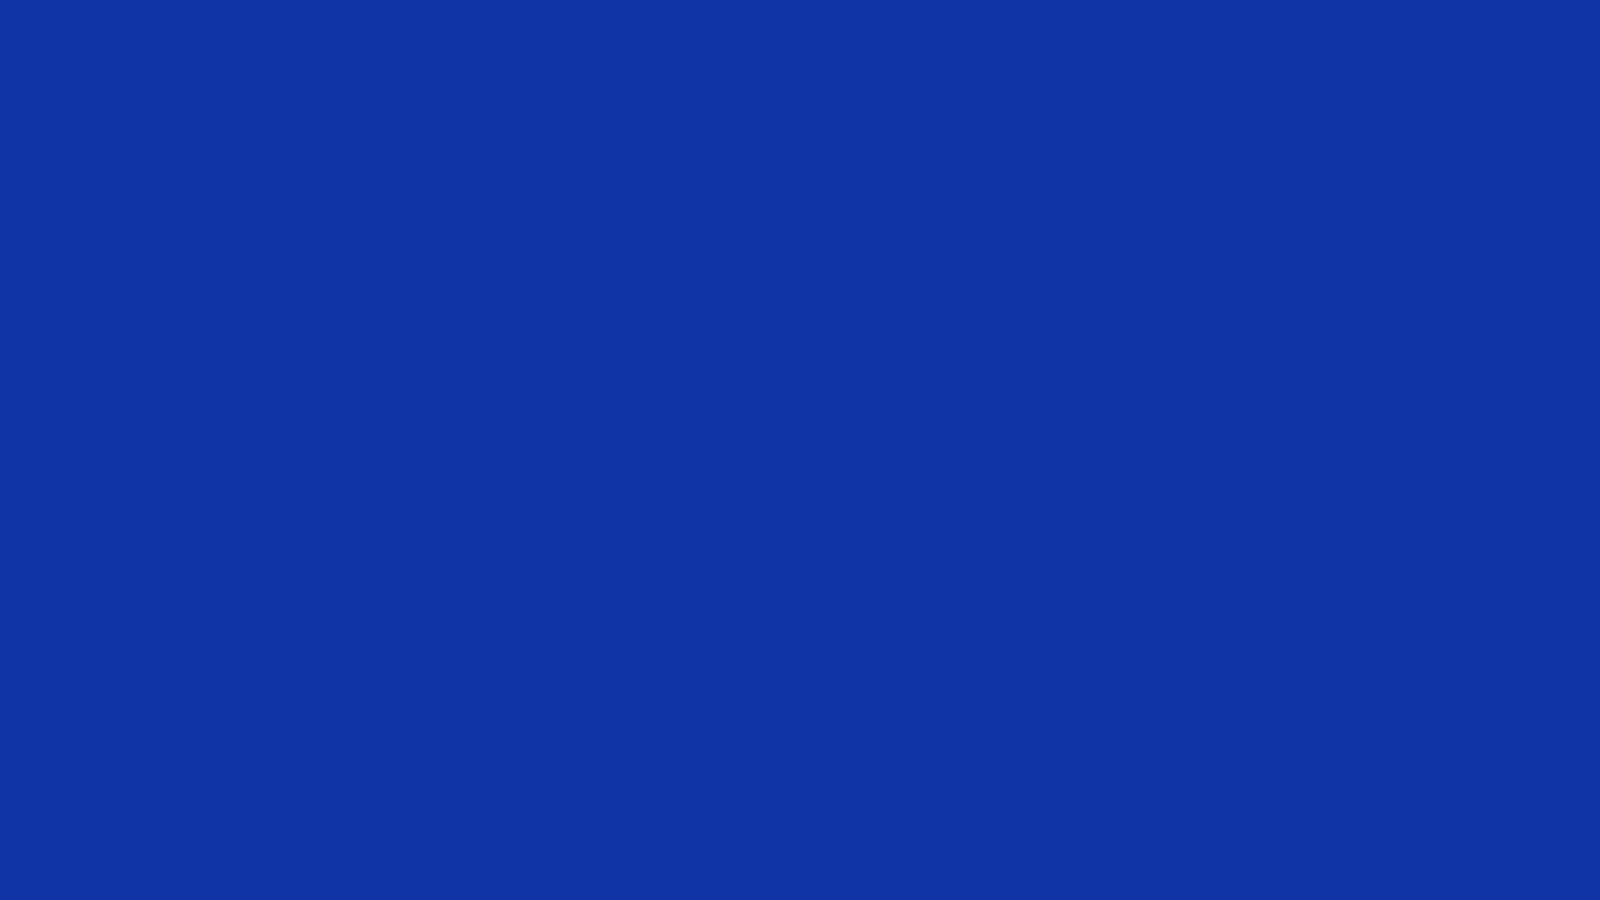 1600x900 Egyptian Blue Solid Color Background